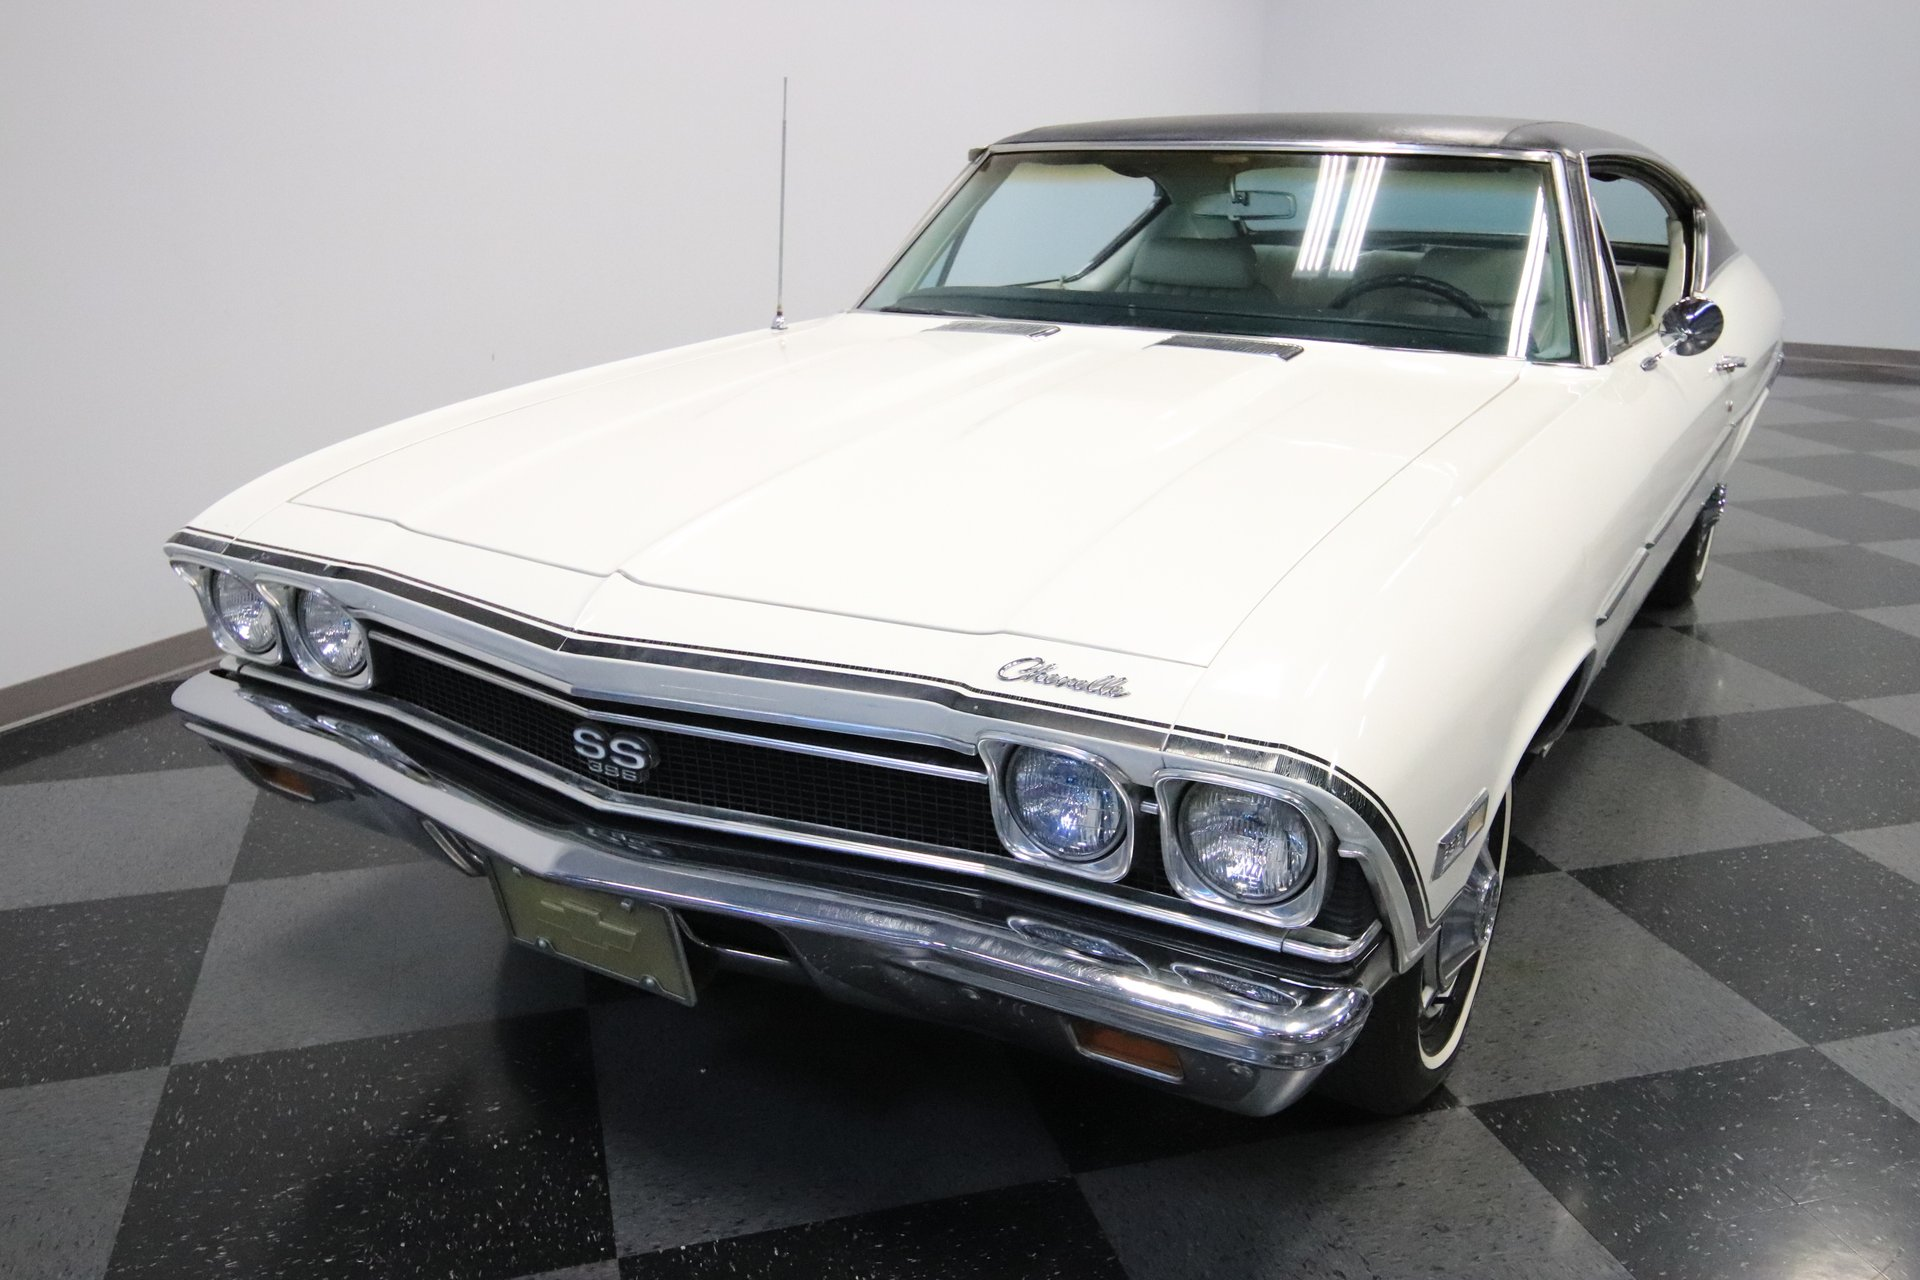 1968 Chevrolet Chevelle Streetside Classics The Nations Trusted Ss For Sale Spincar View Play Video 360